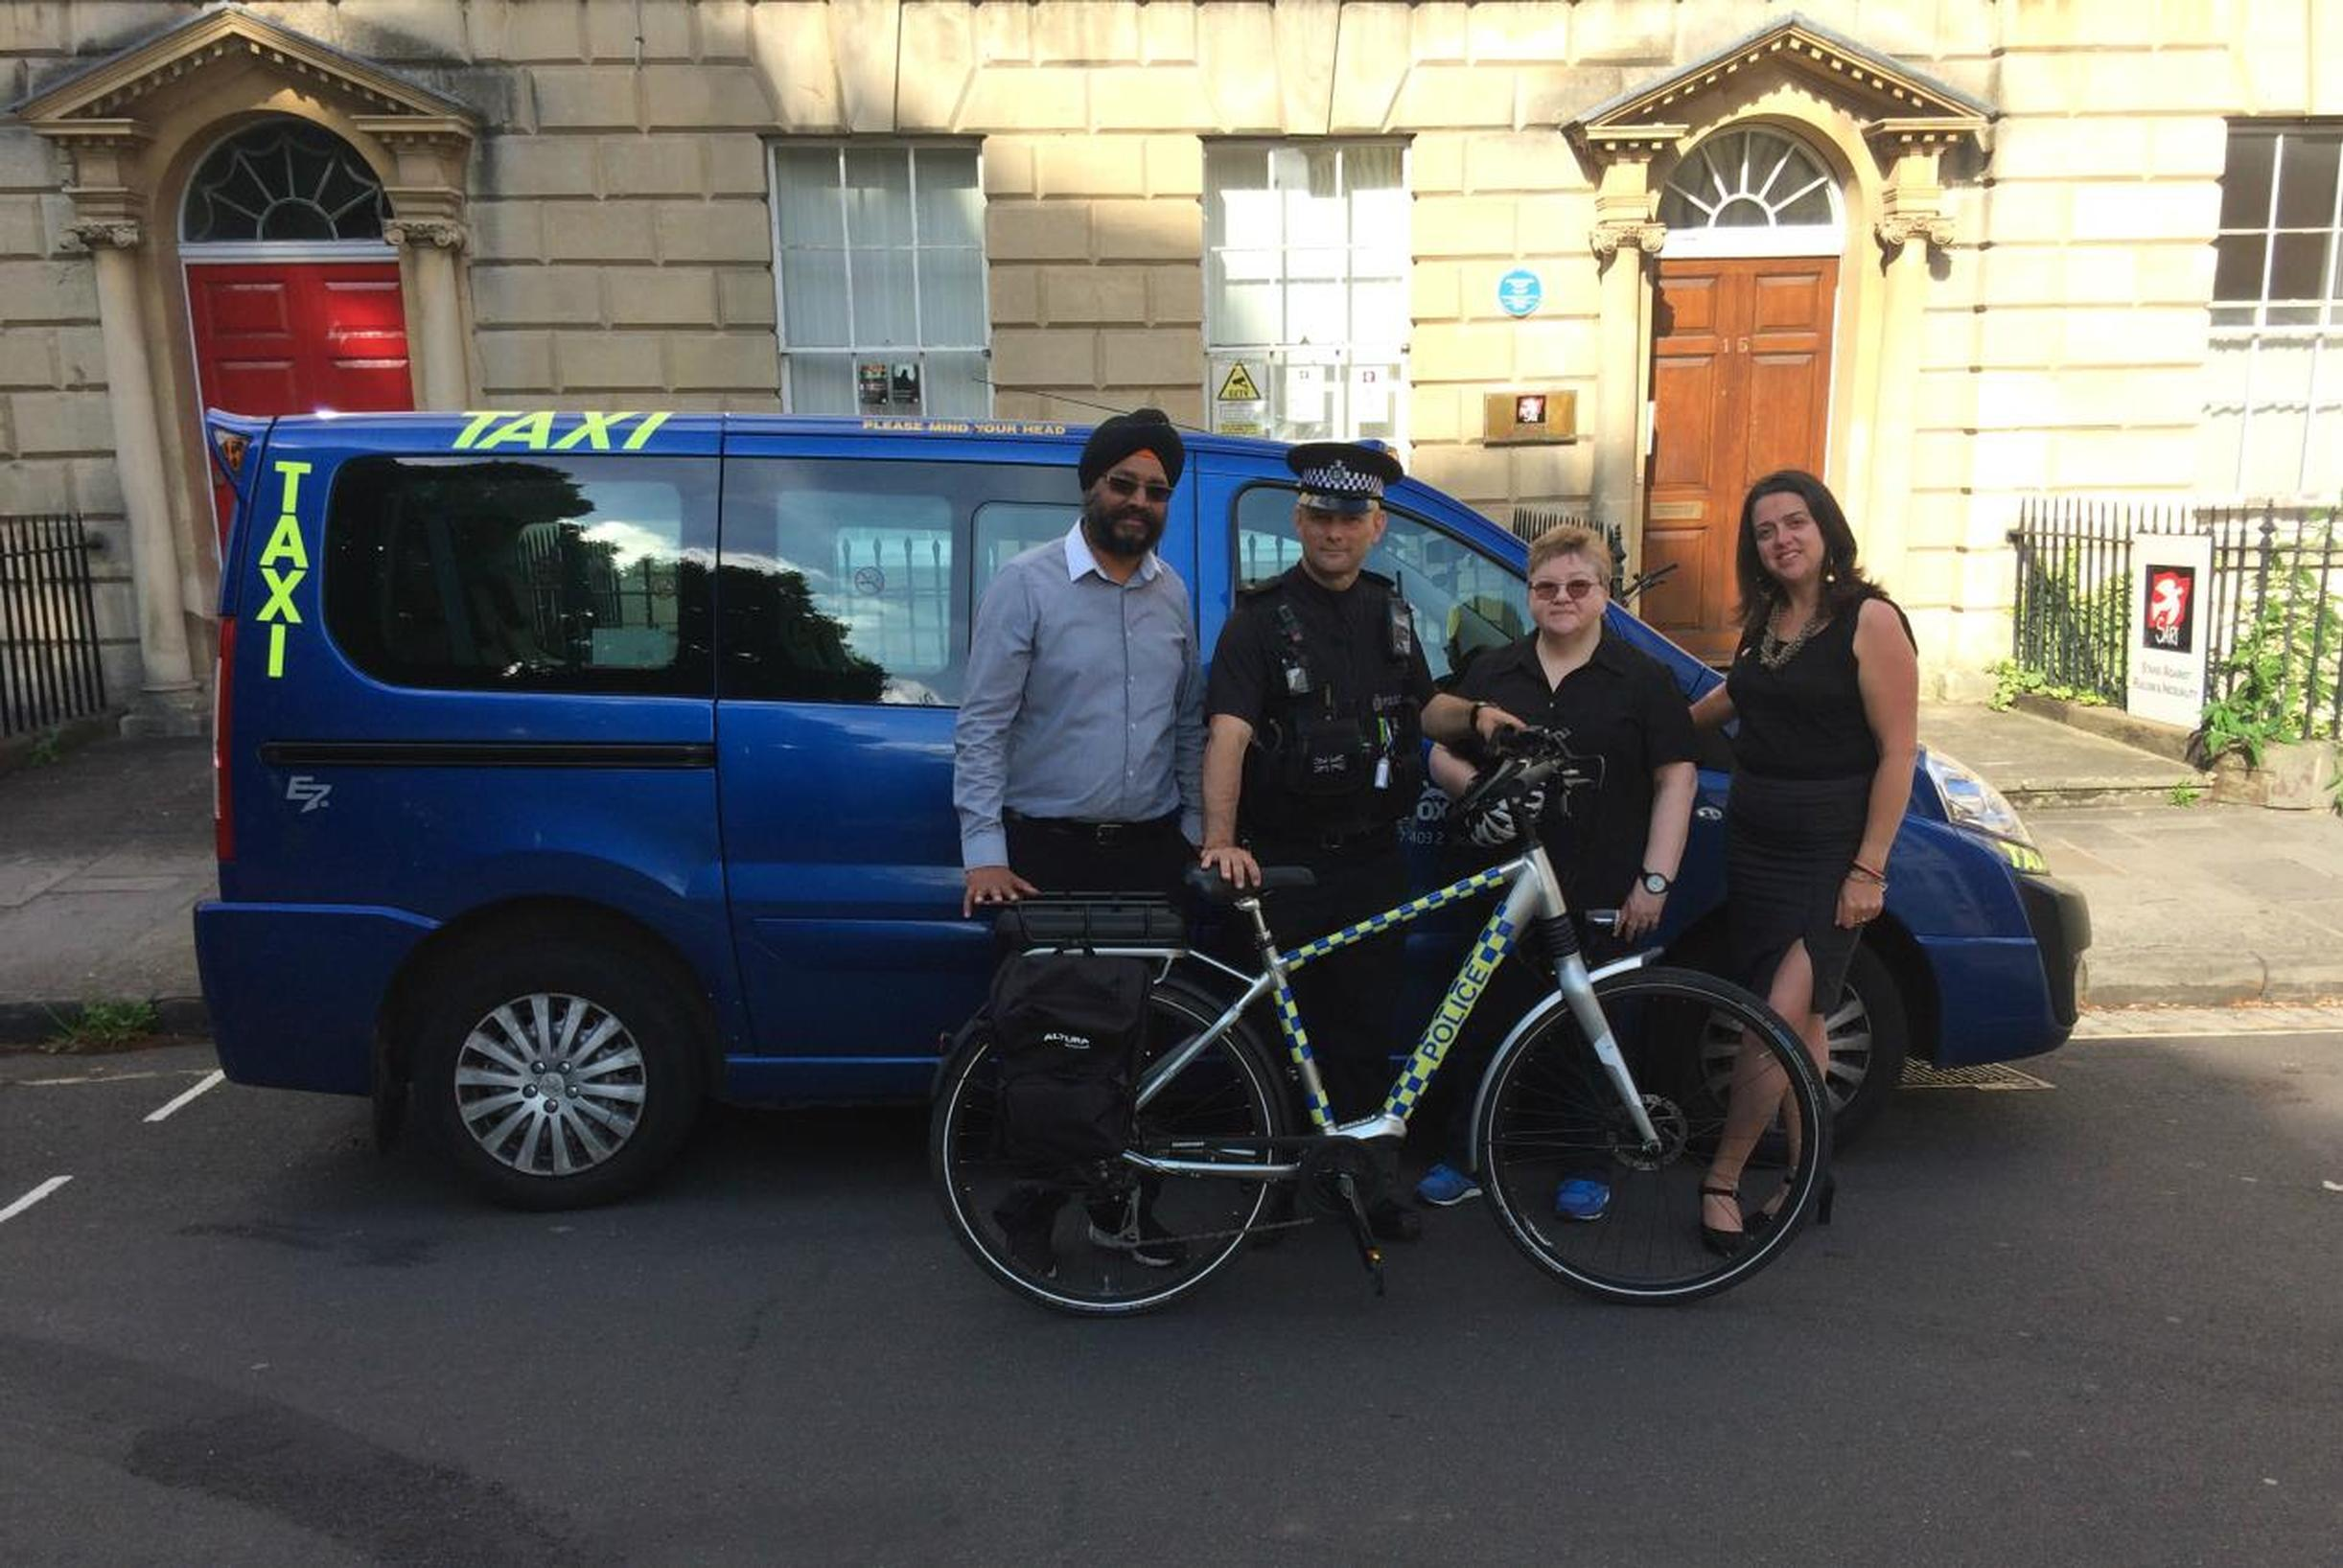 'Taxi Cop' takes to the beat in Bristol